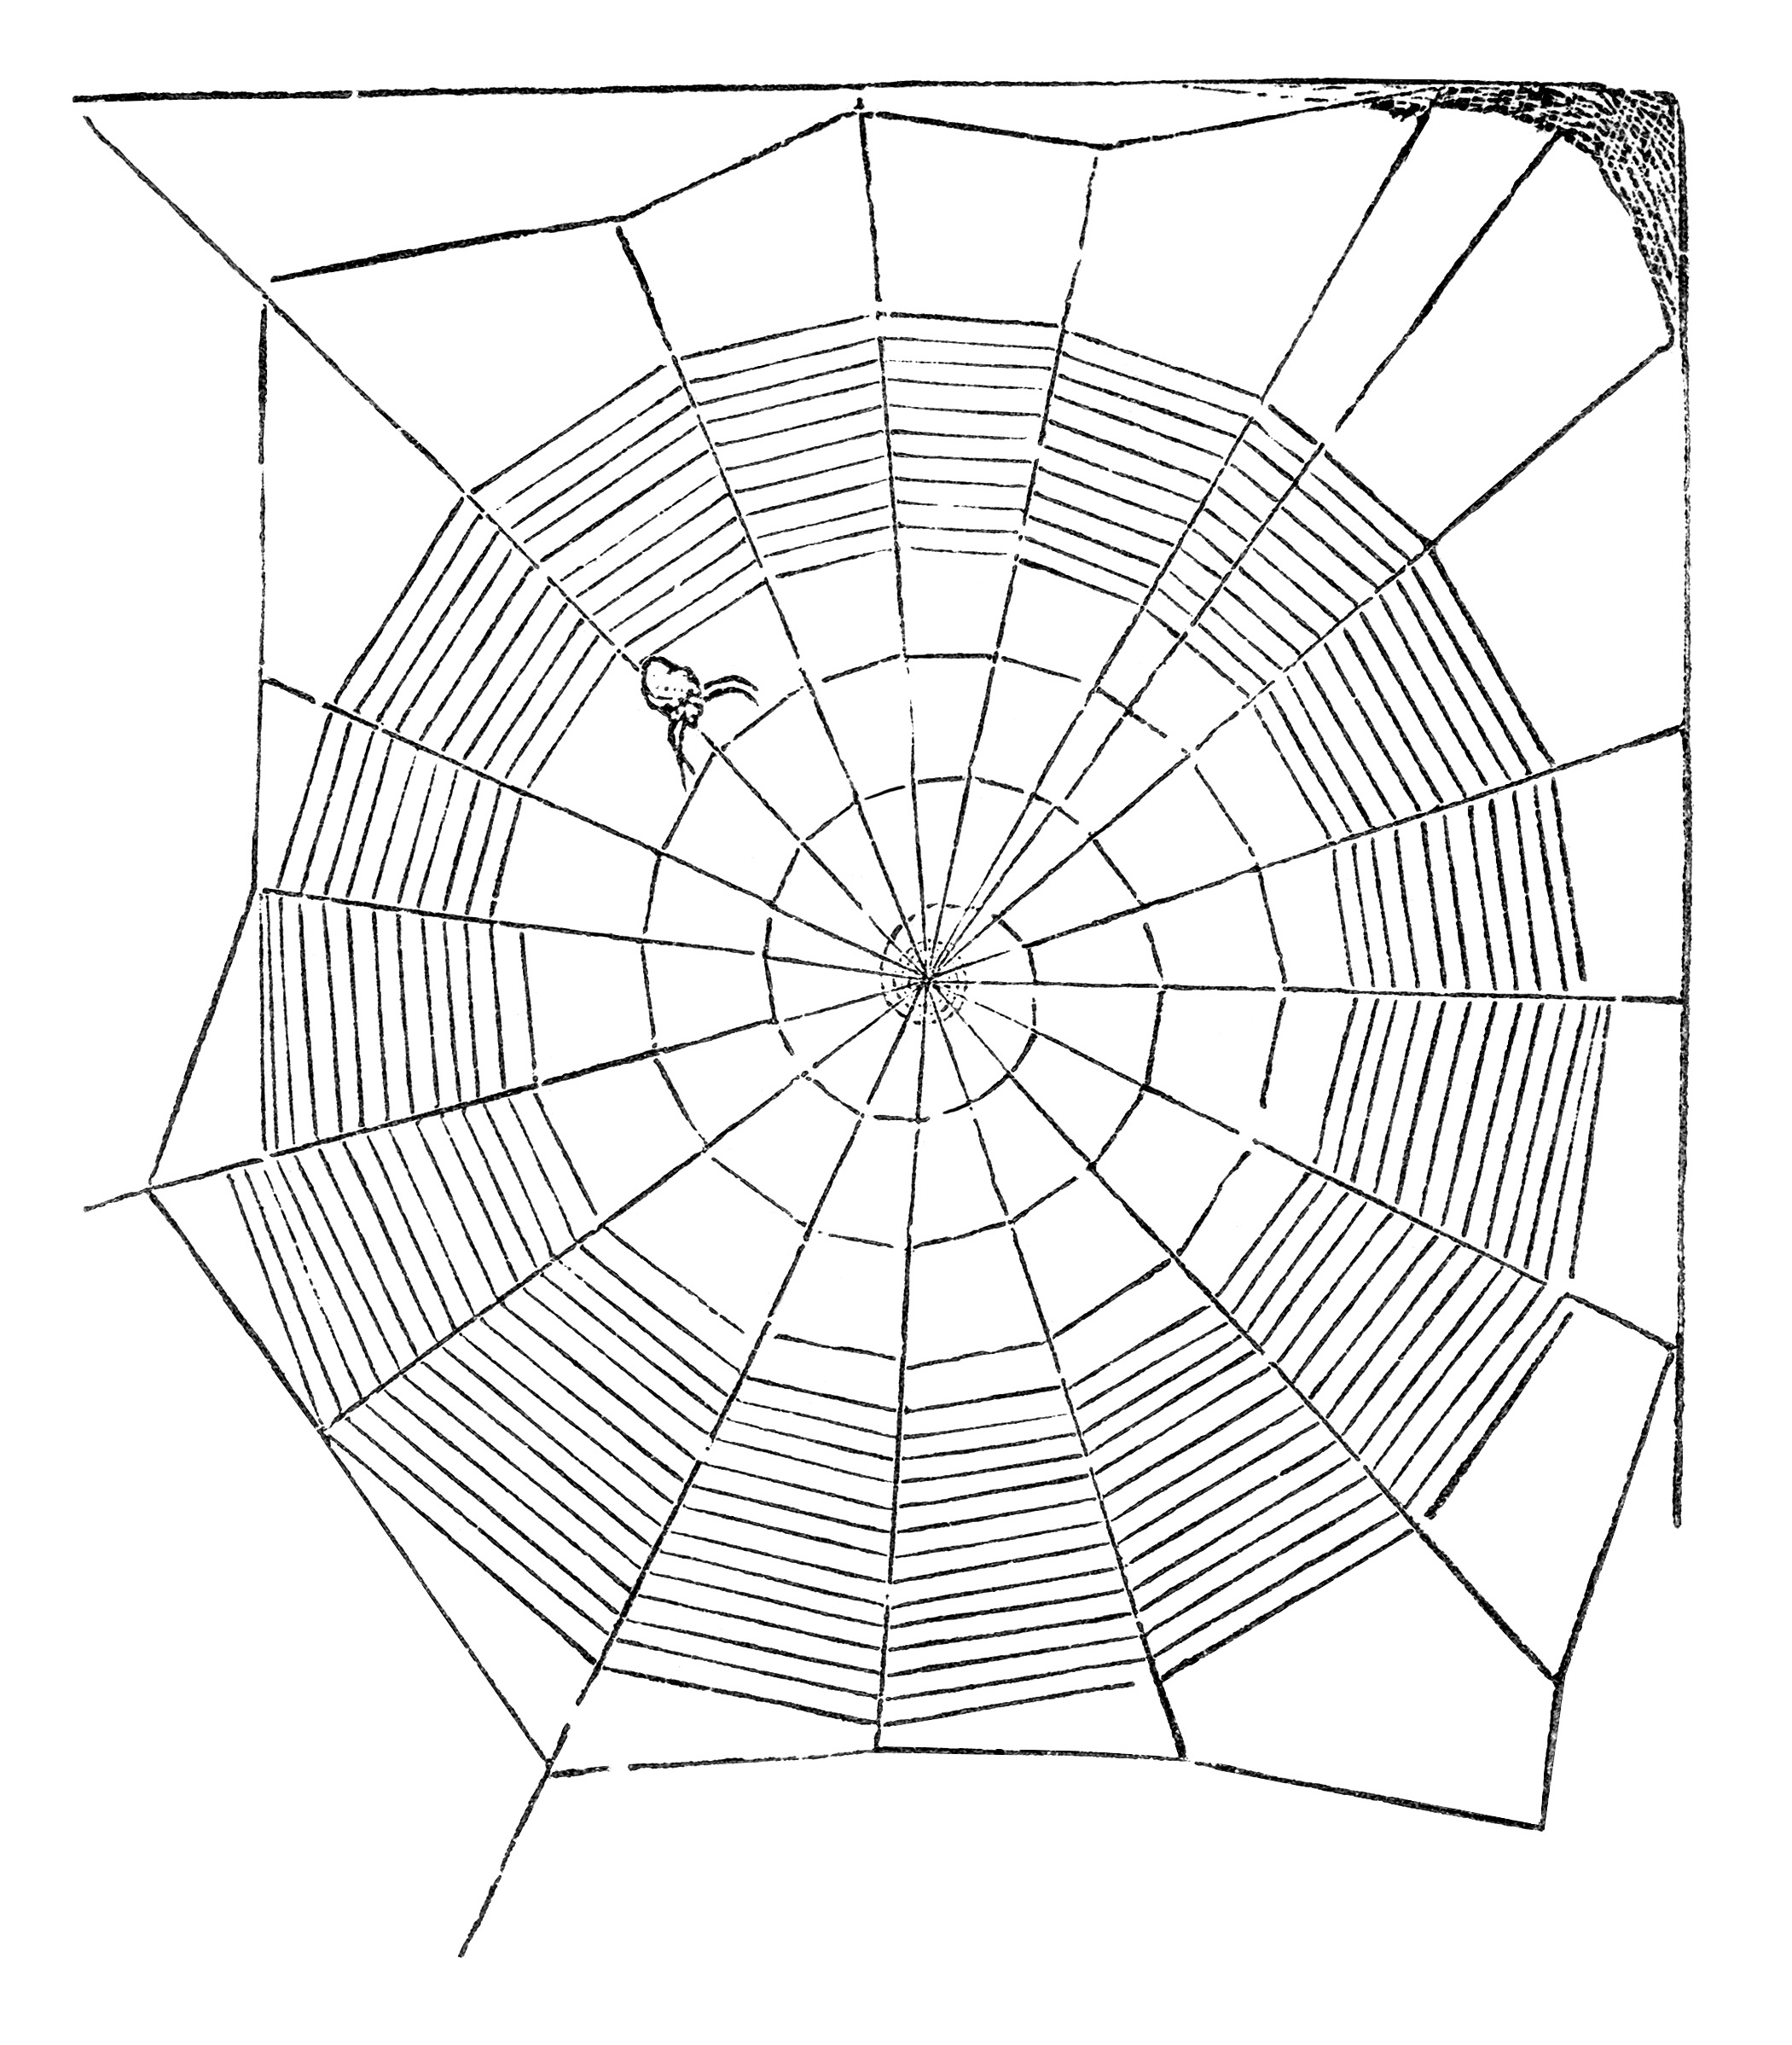 Spider And Web Free Vintage Clip Art